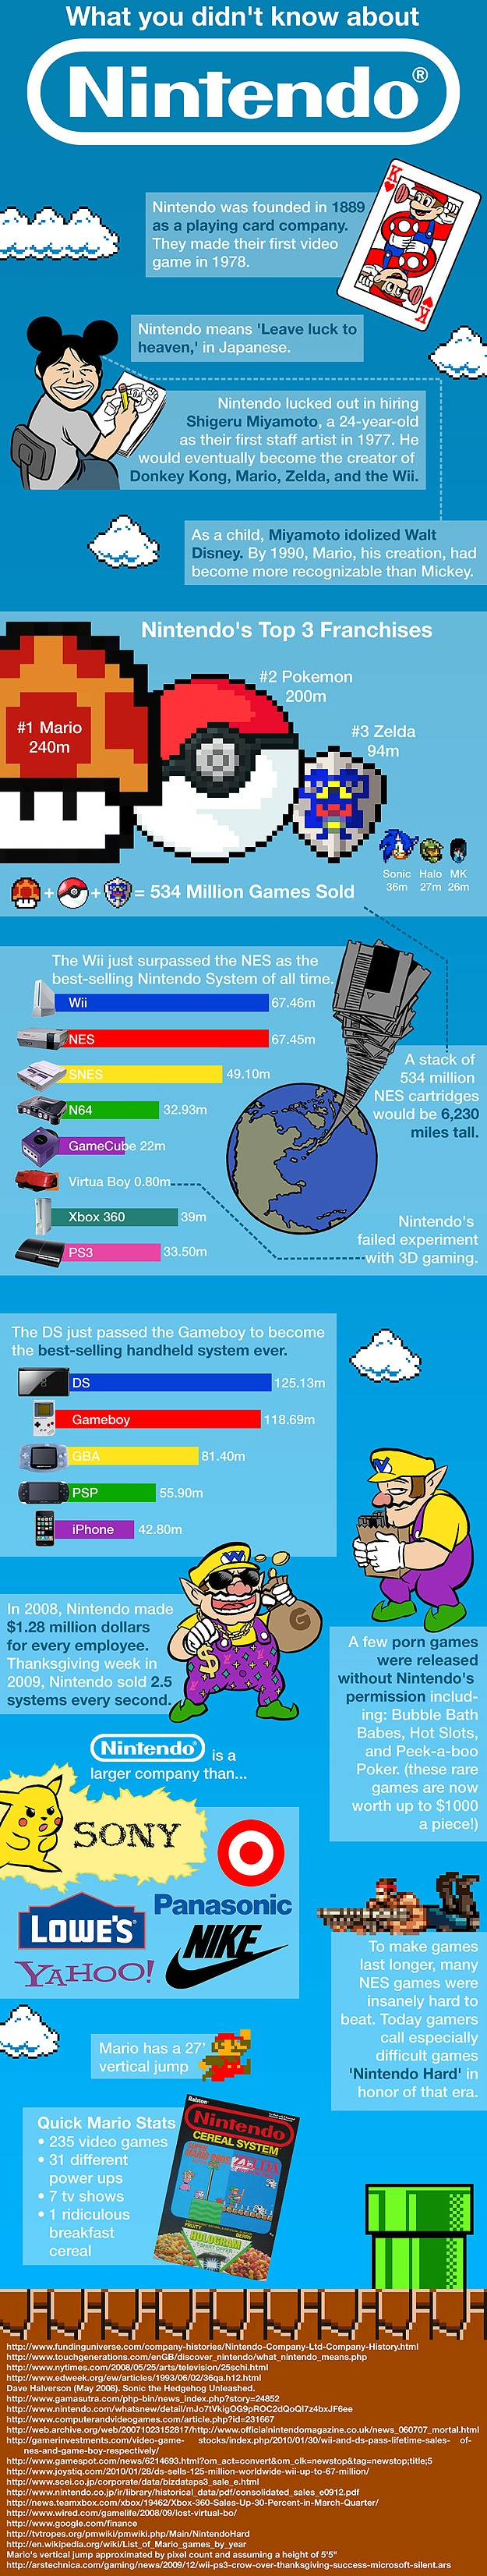 Facts You Probably Didn't Know About The Nintendo Company